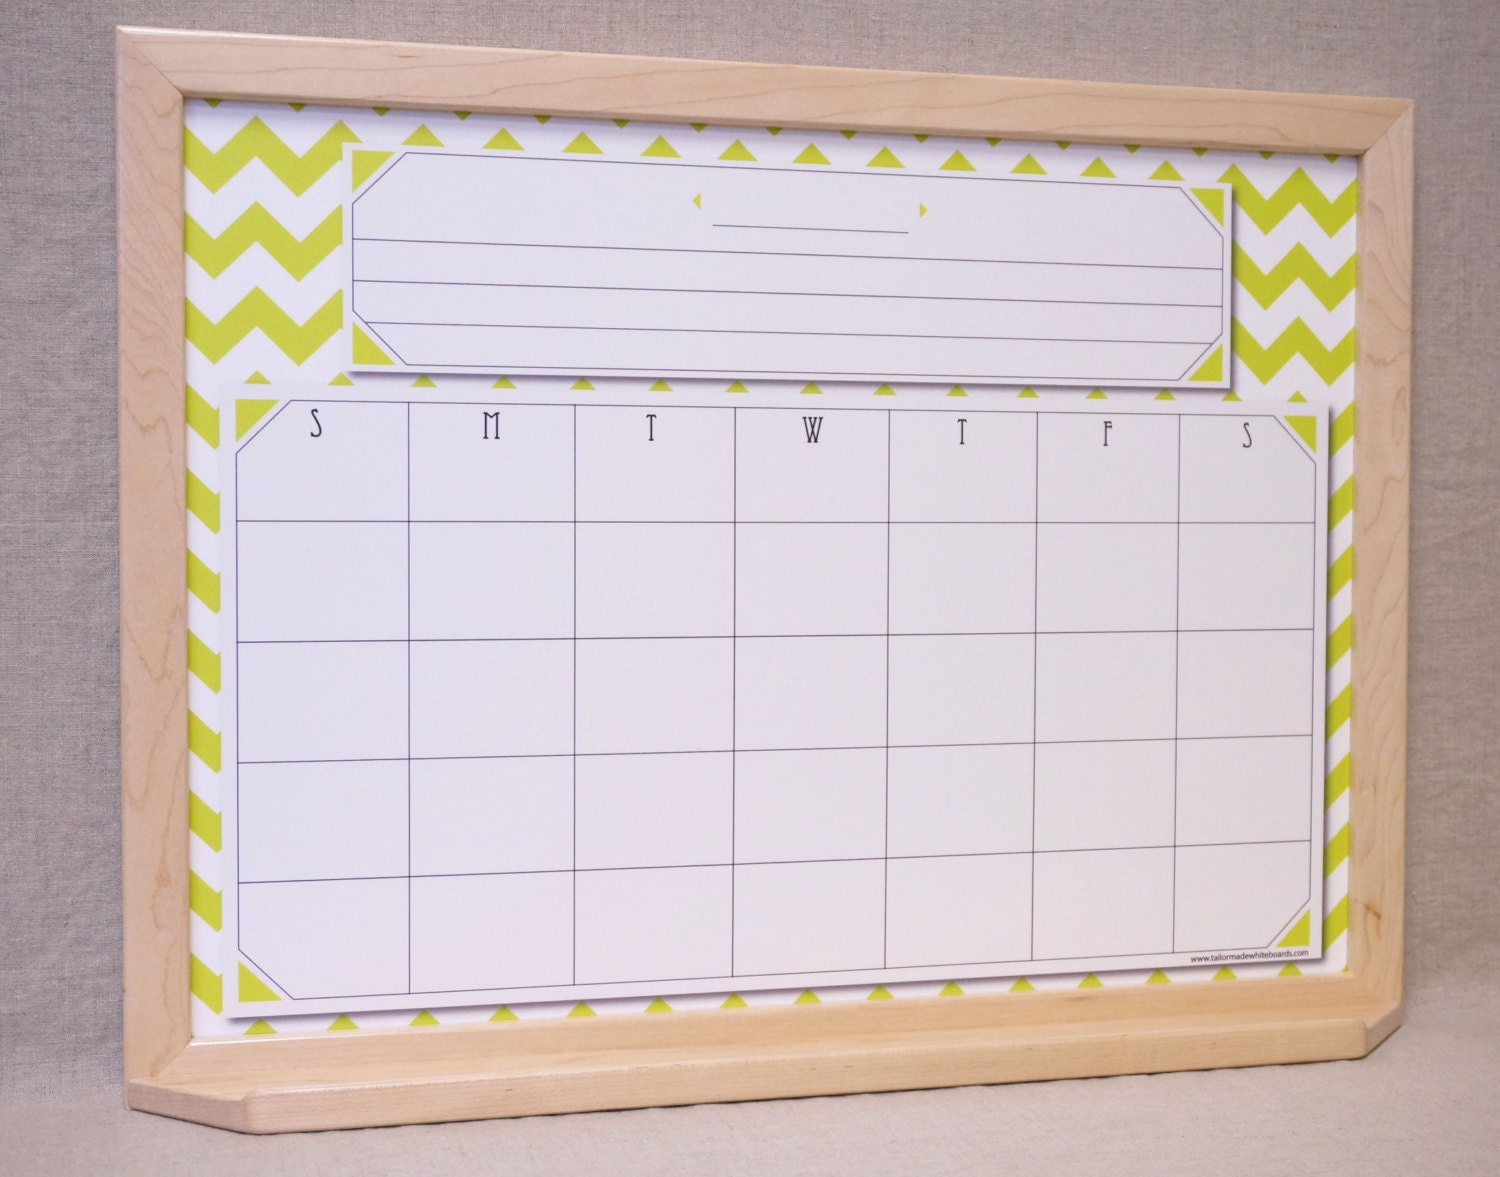 Framed Whiteboard Calendar Chartreuse/White Chevron Framed